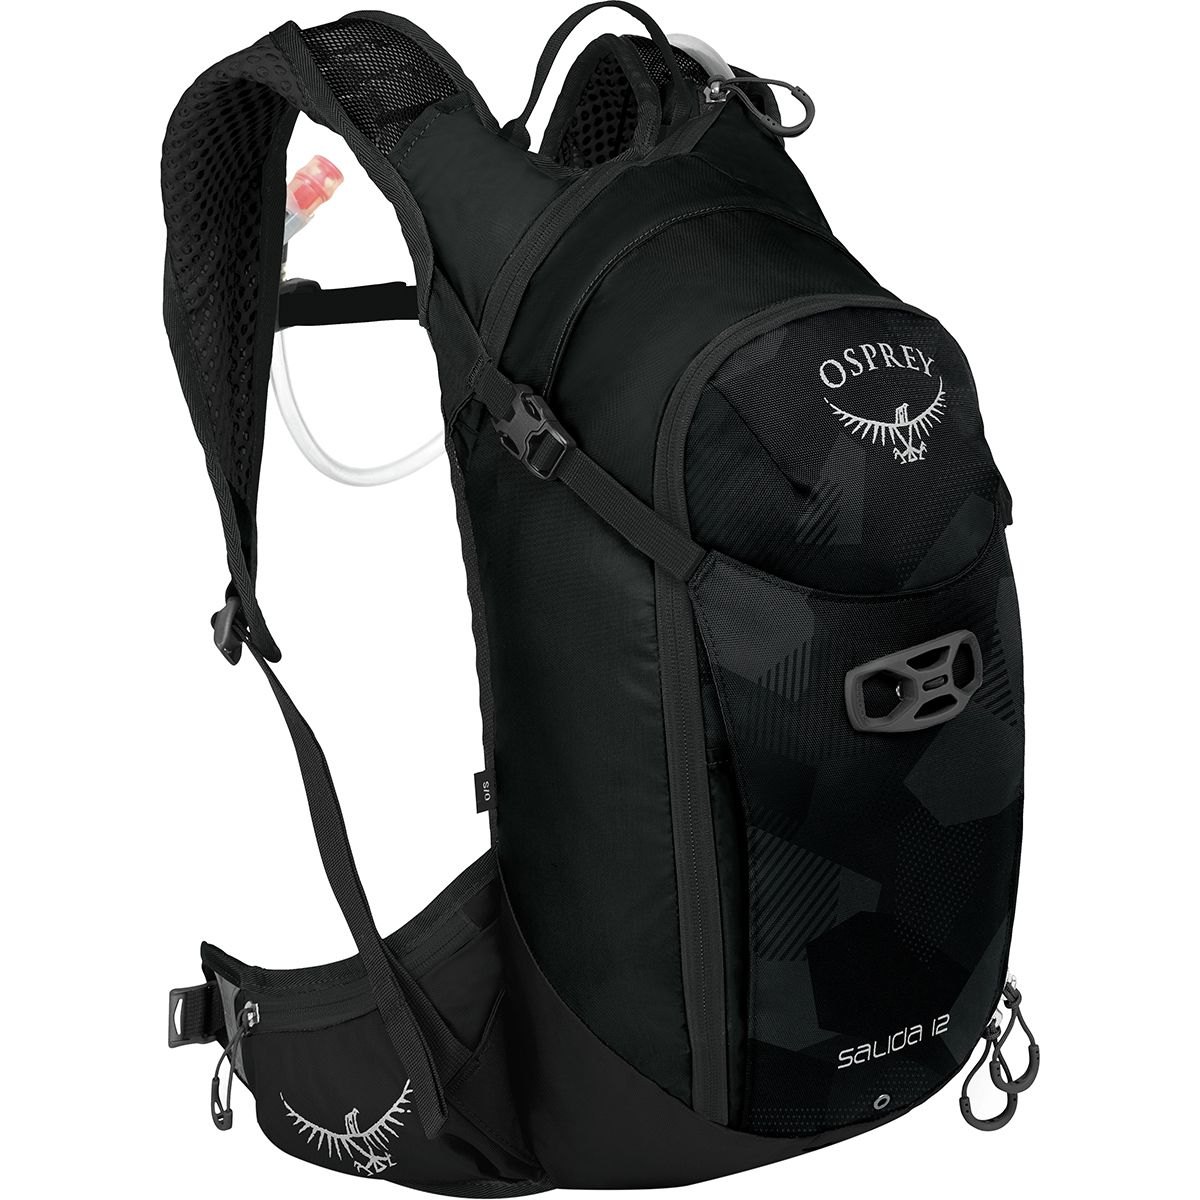 photo: Osprey Salida 12 hydration pack